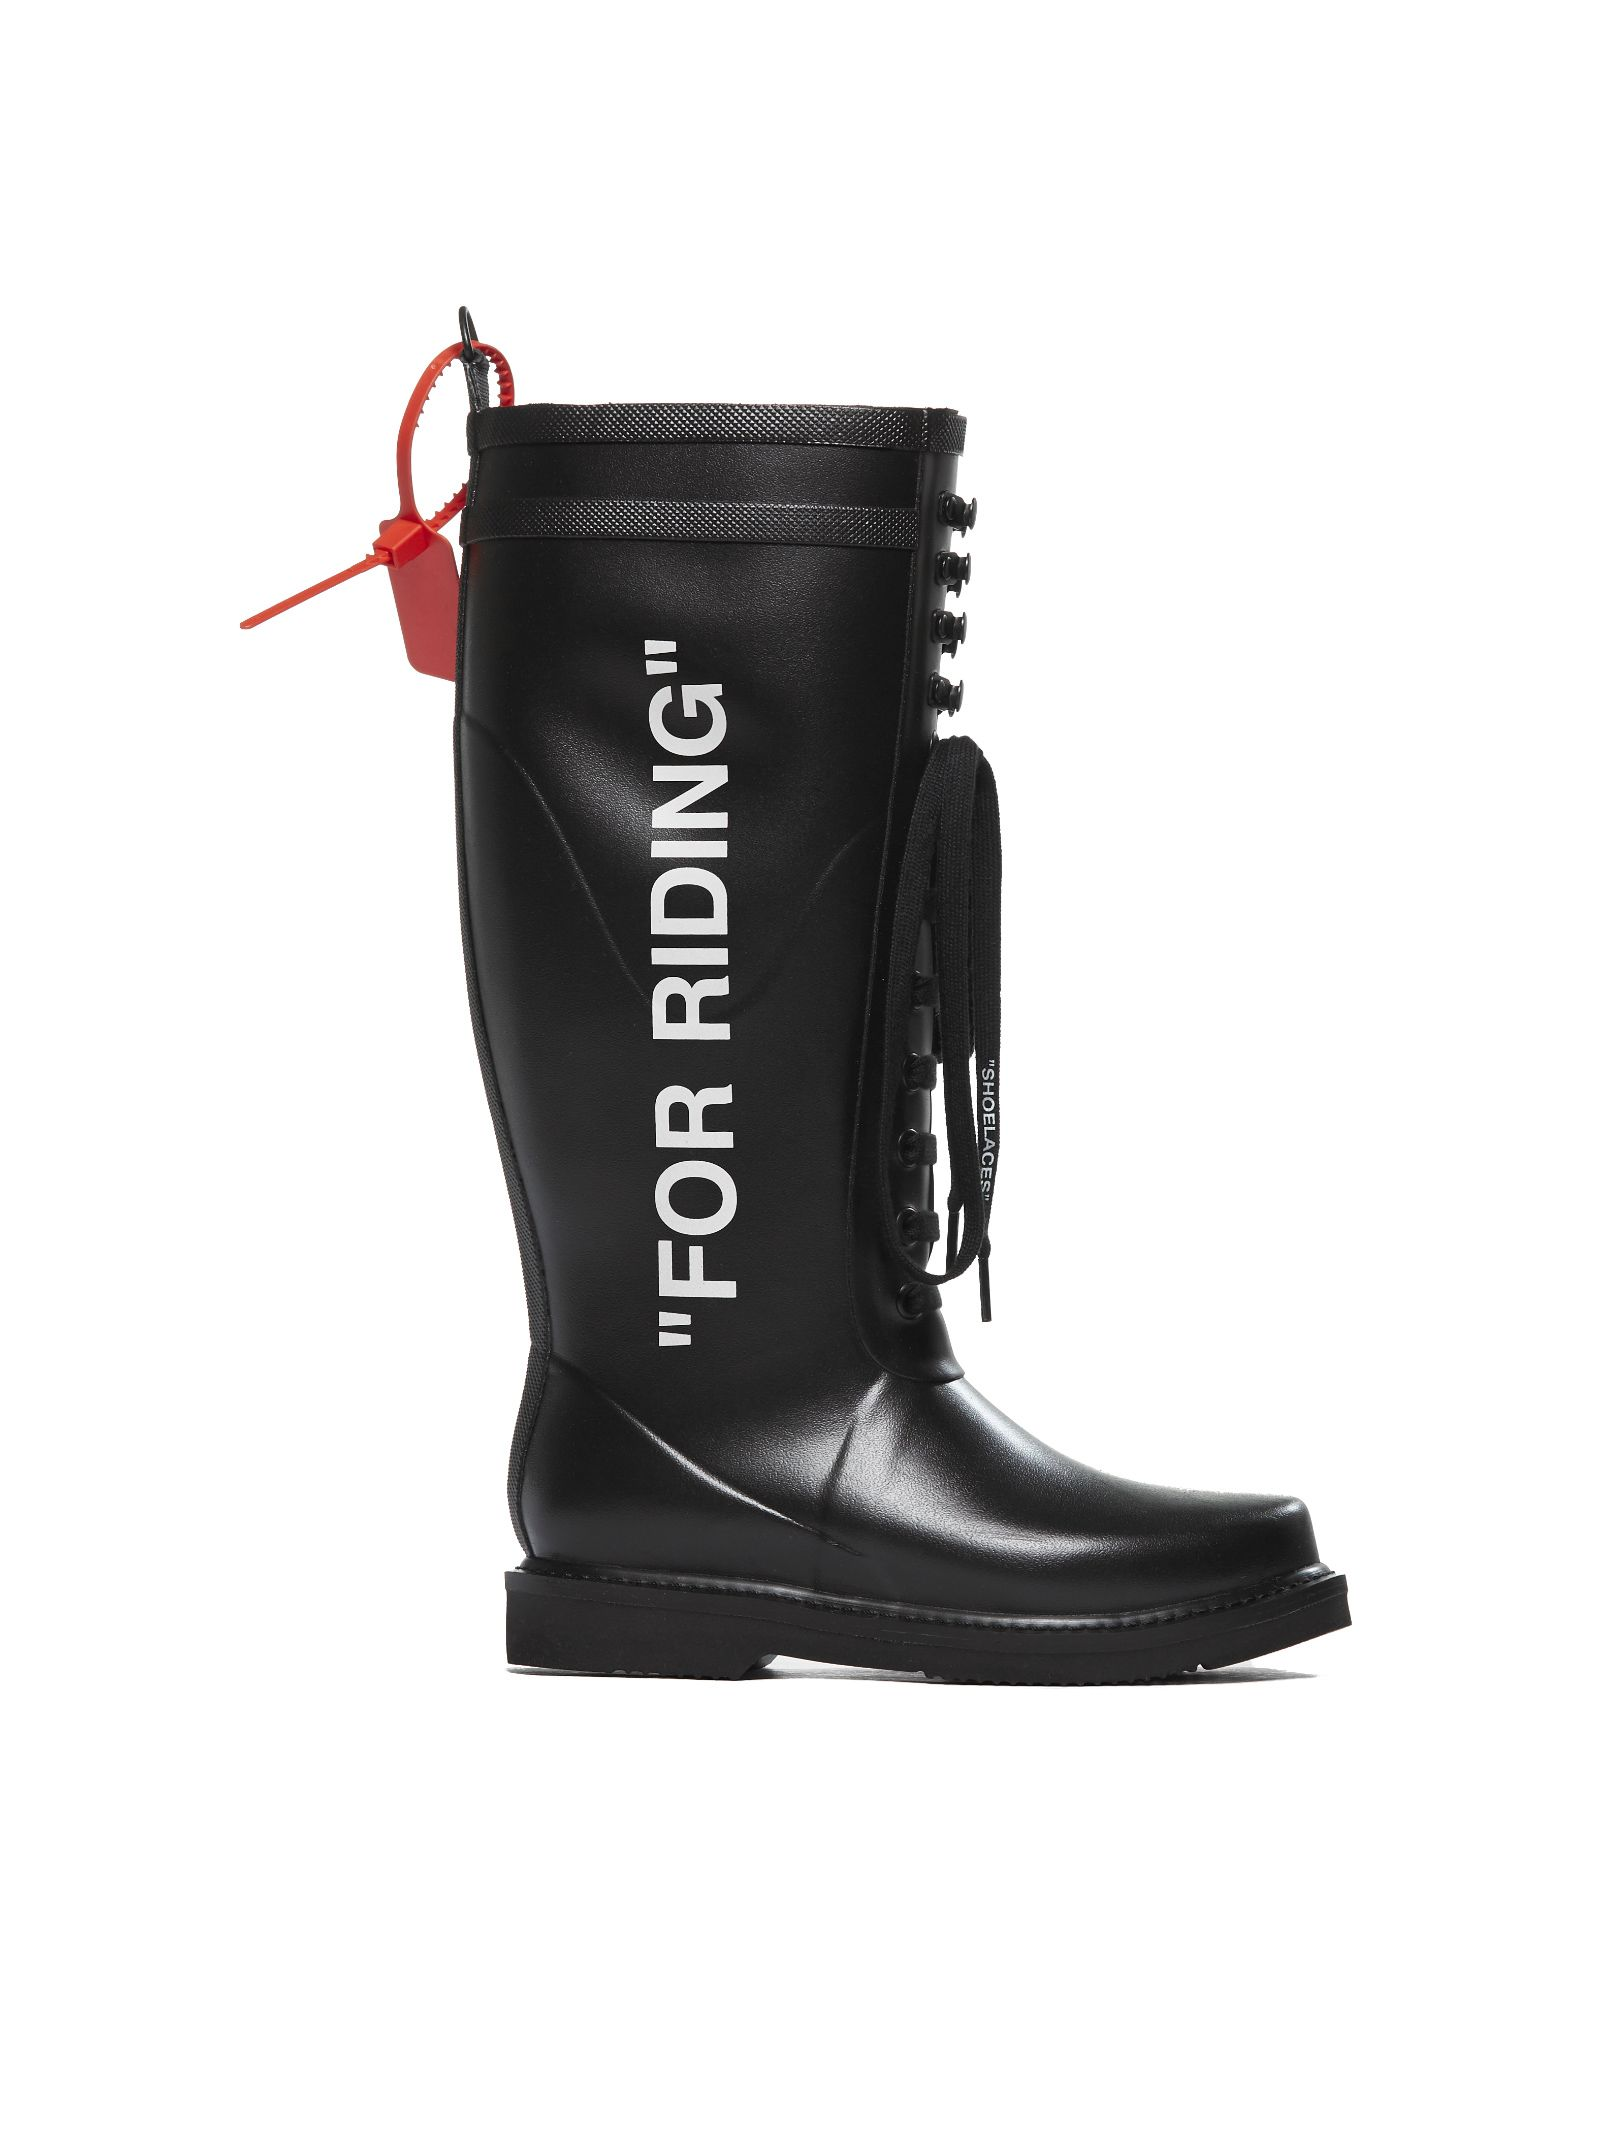 Off-white Wellington Lace Up Boots